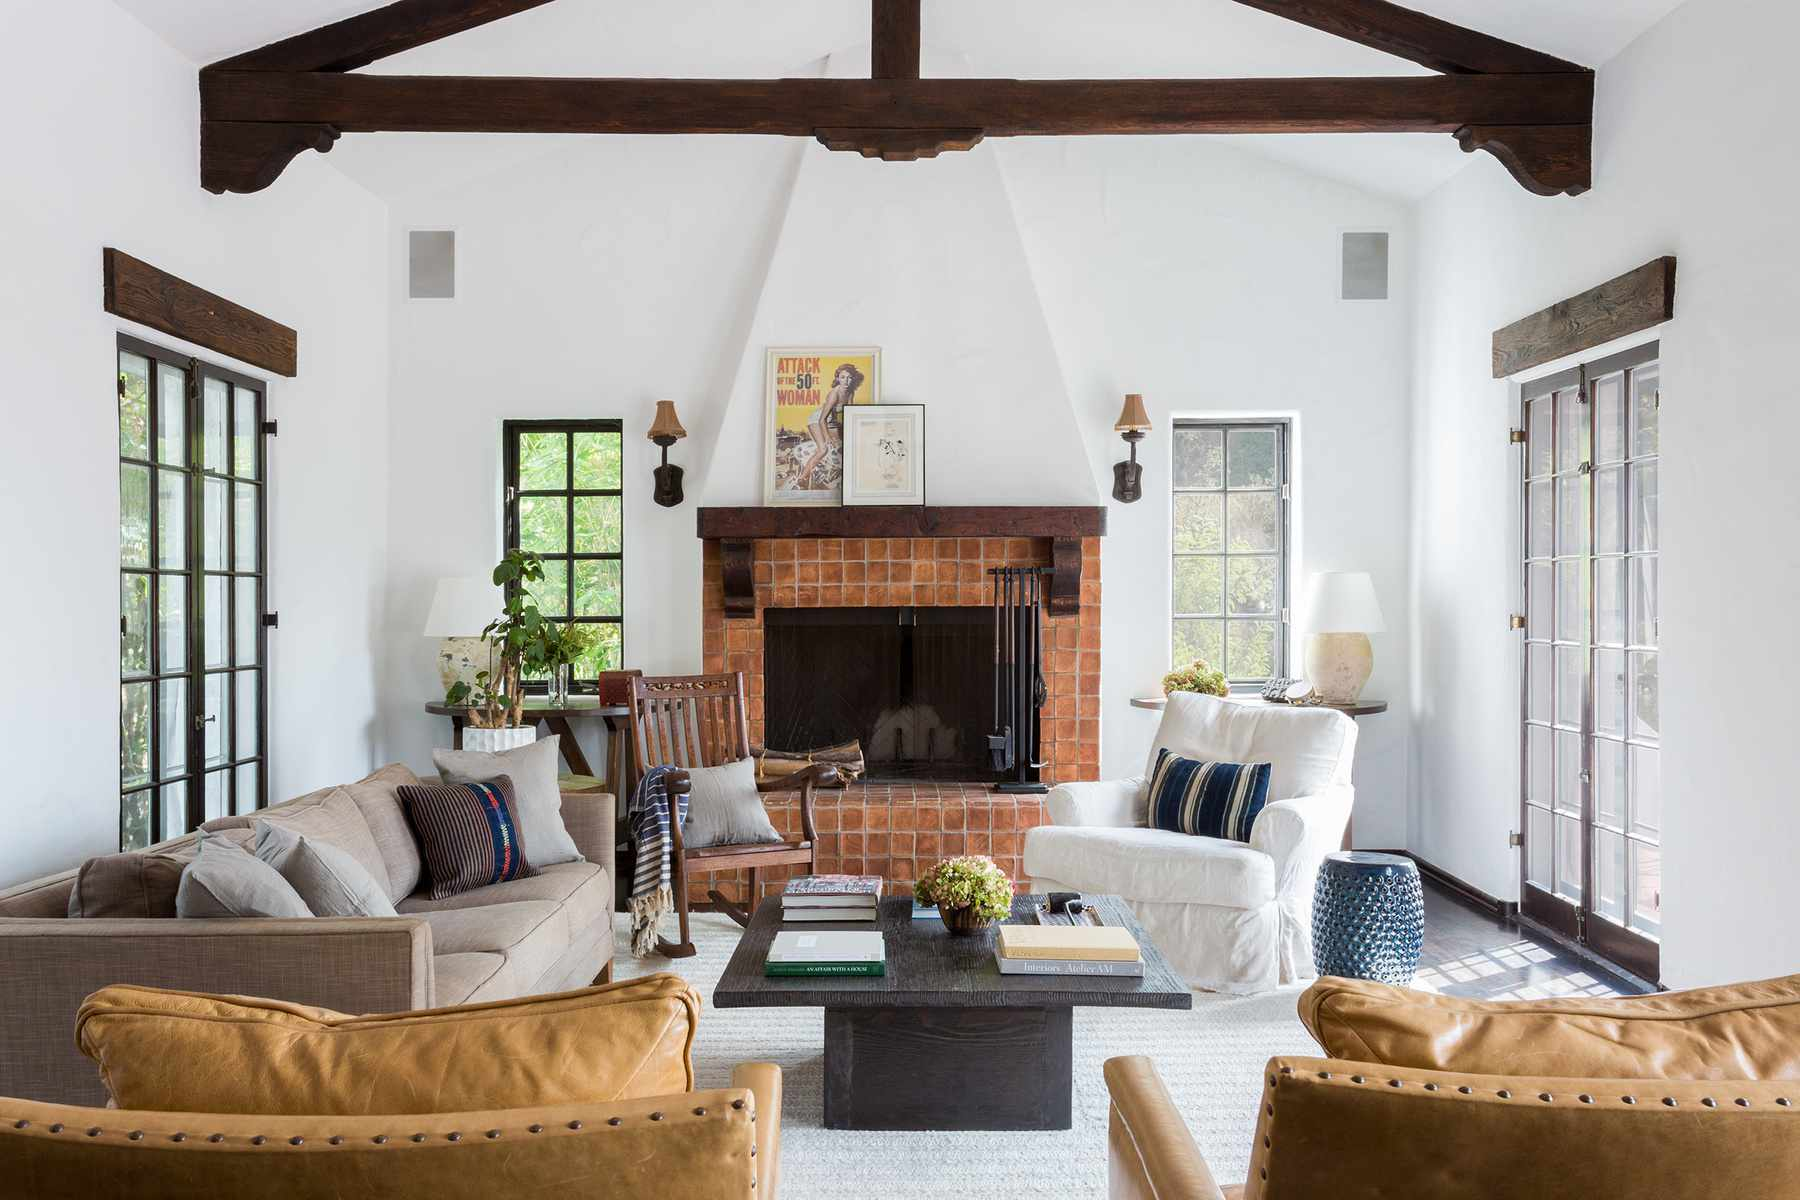 Cozy Southwestern style living room with wood architectural details